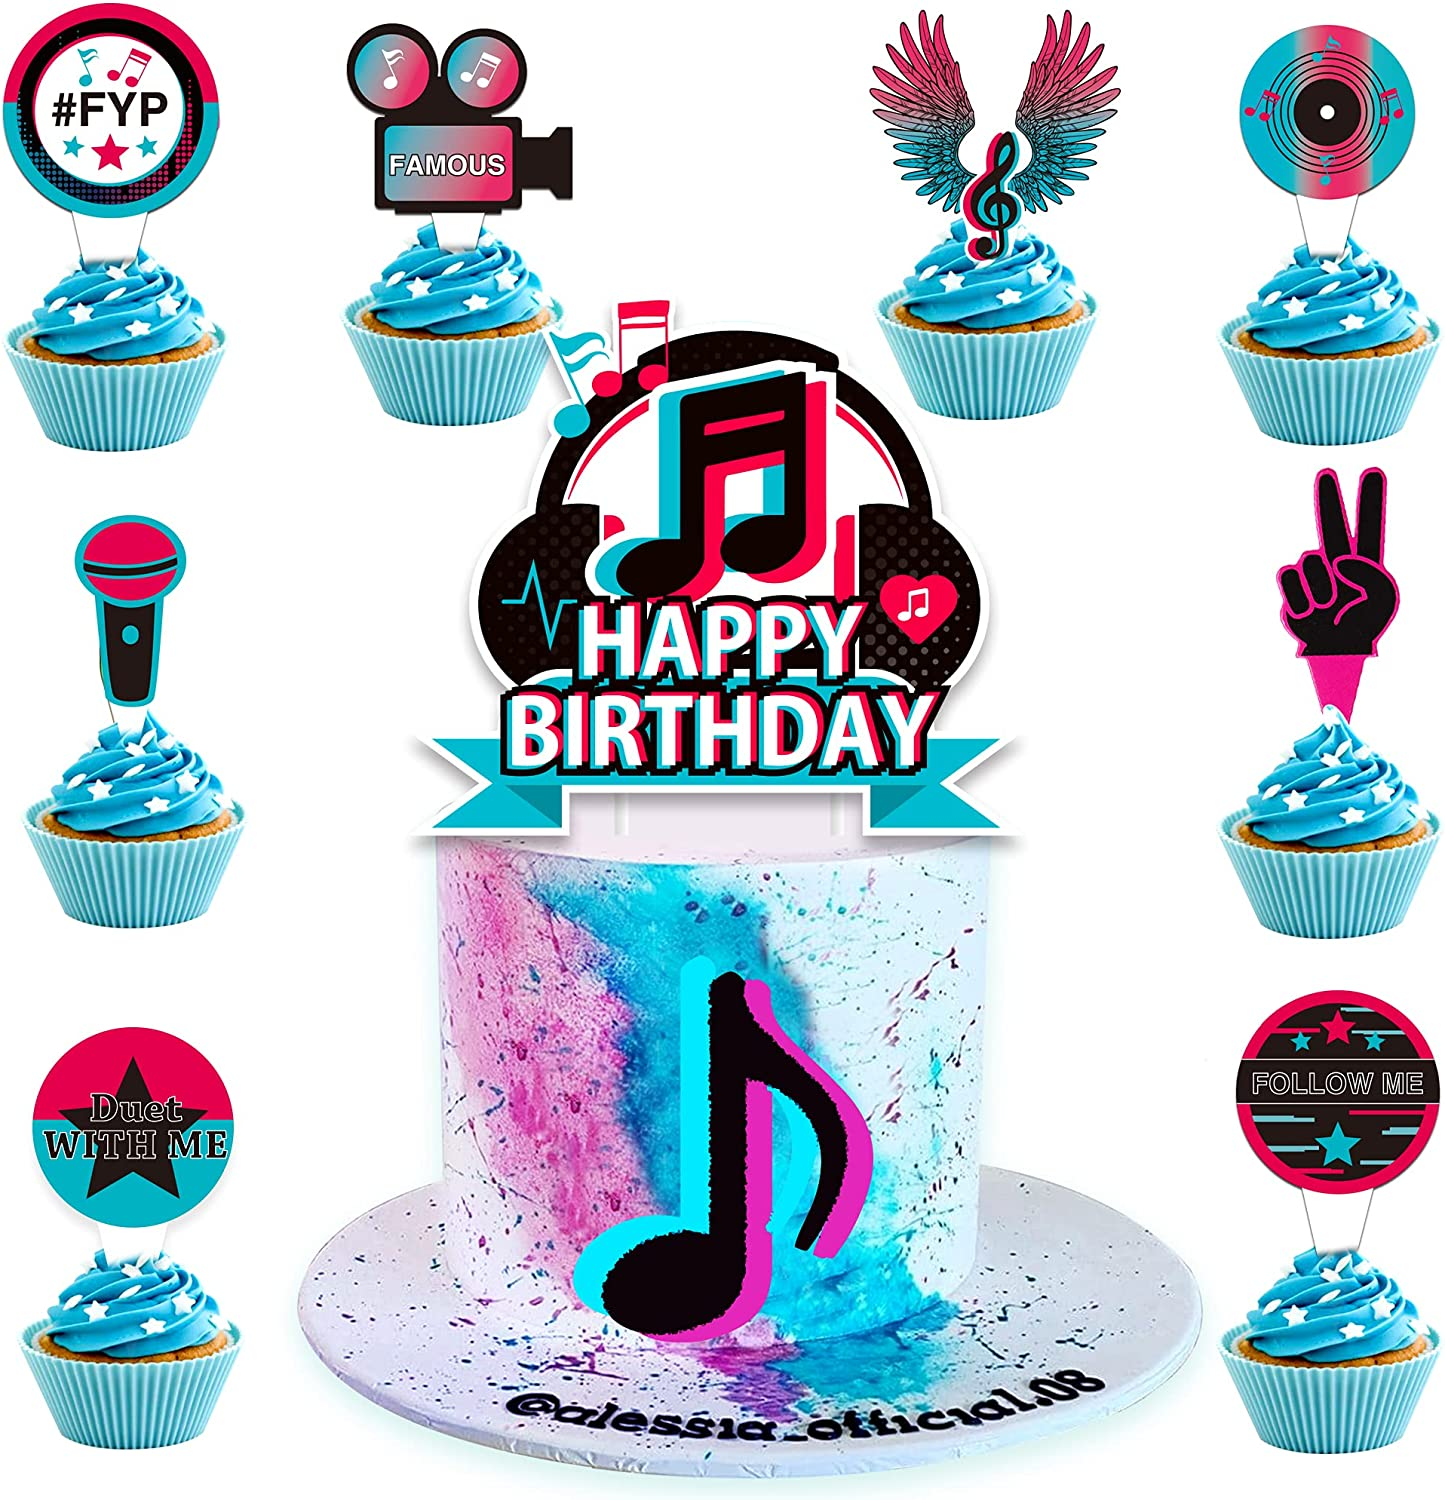 Musical Happy Birthday Cake Topper, Hot Music Note Themed Topper Celebrate Birthday Cupcakes Topper, Party decor Decorations,Set of 25